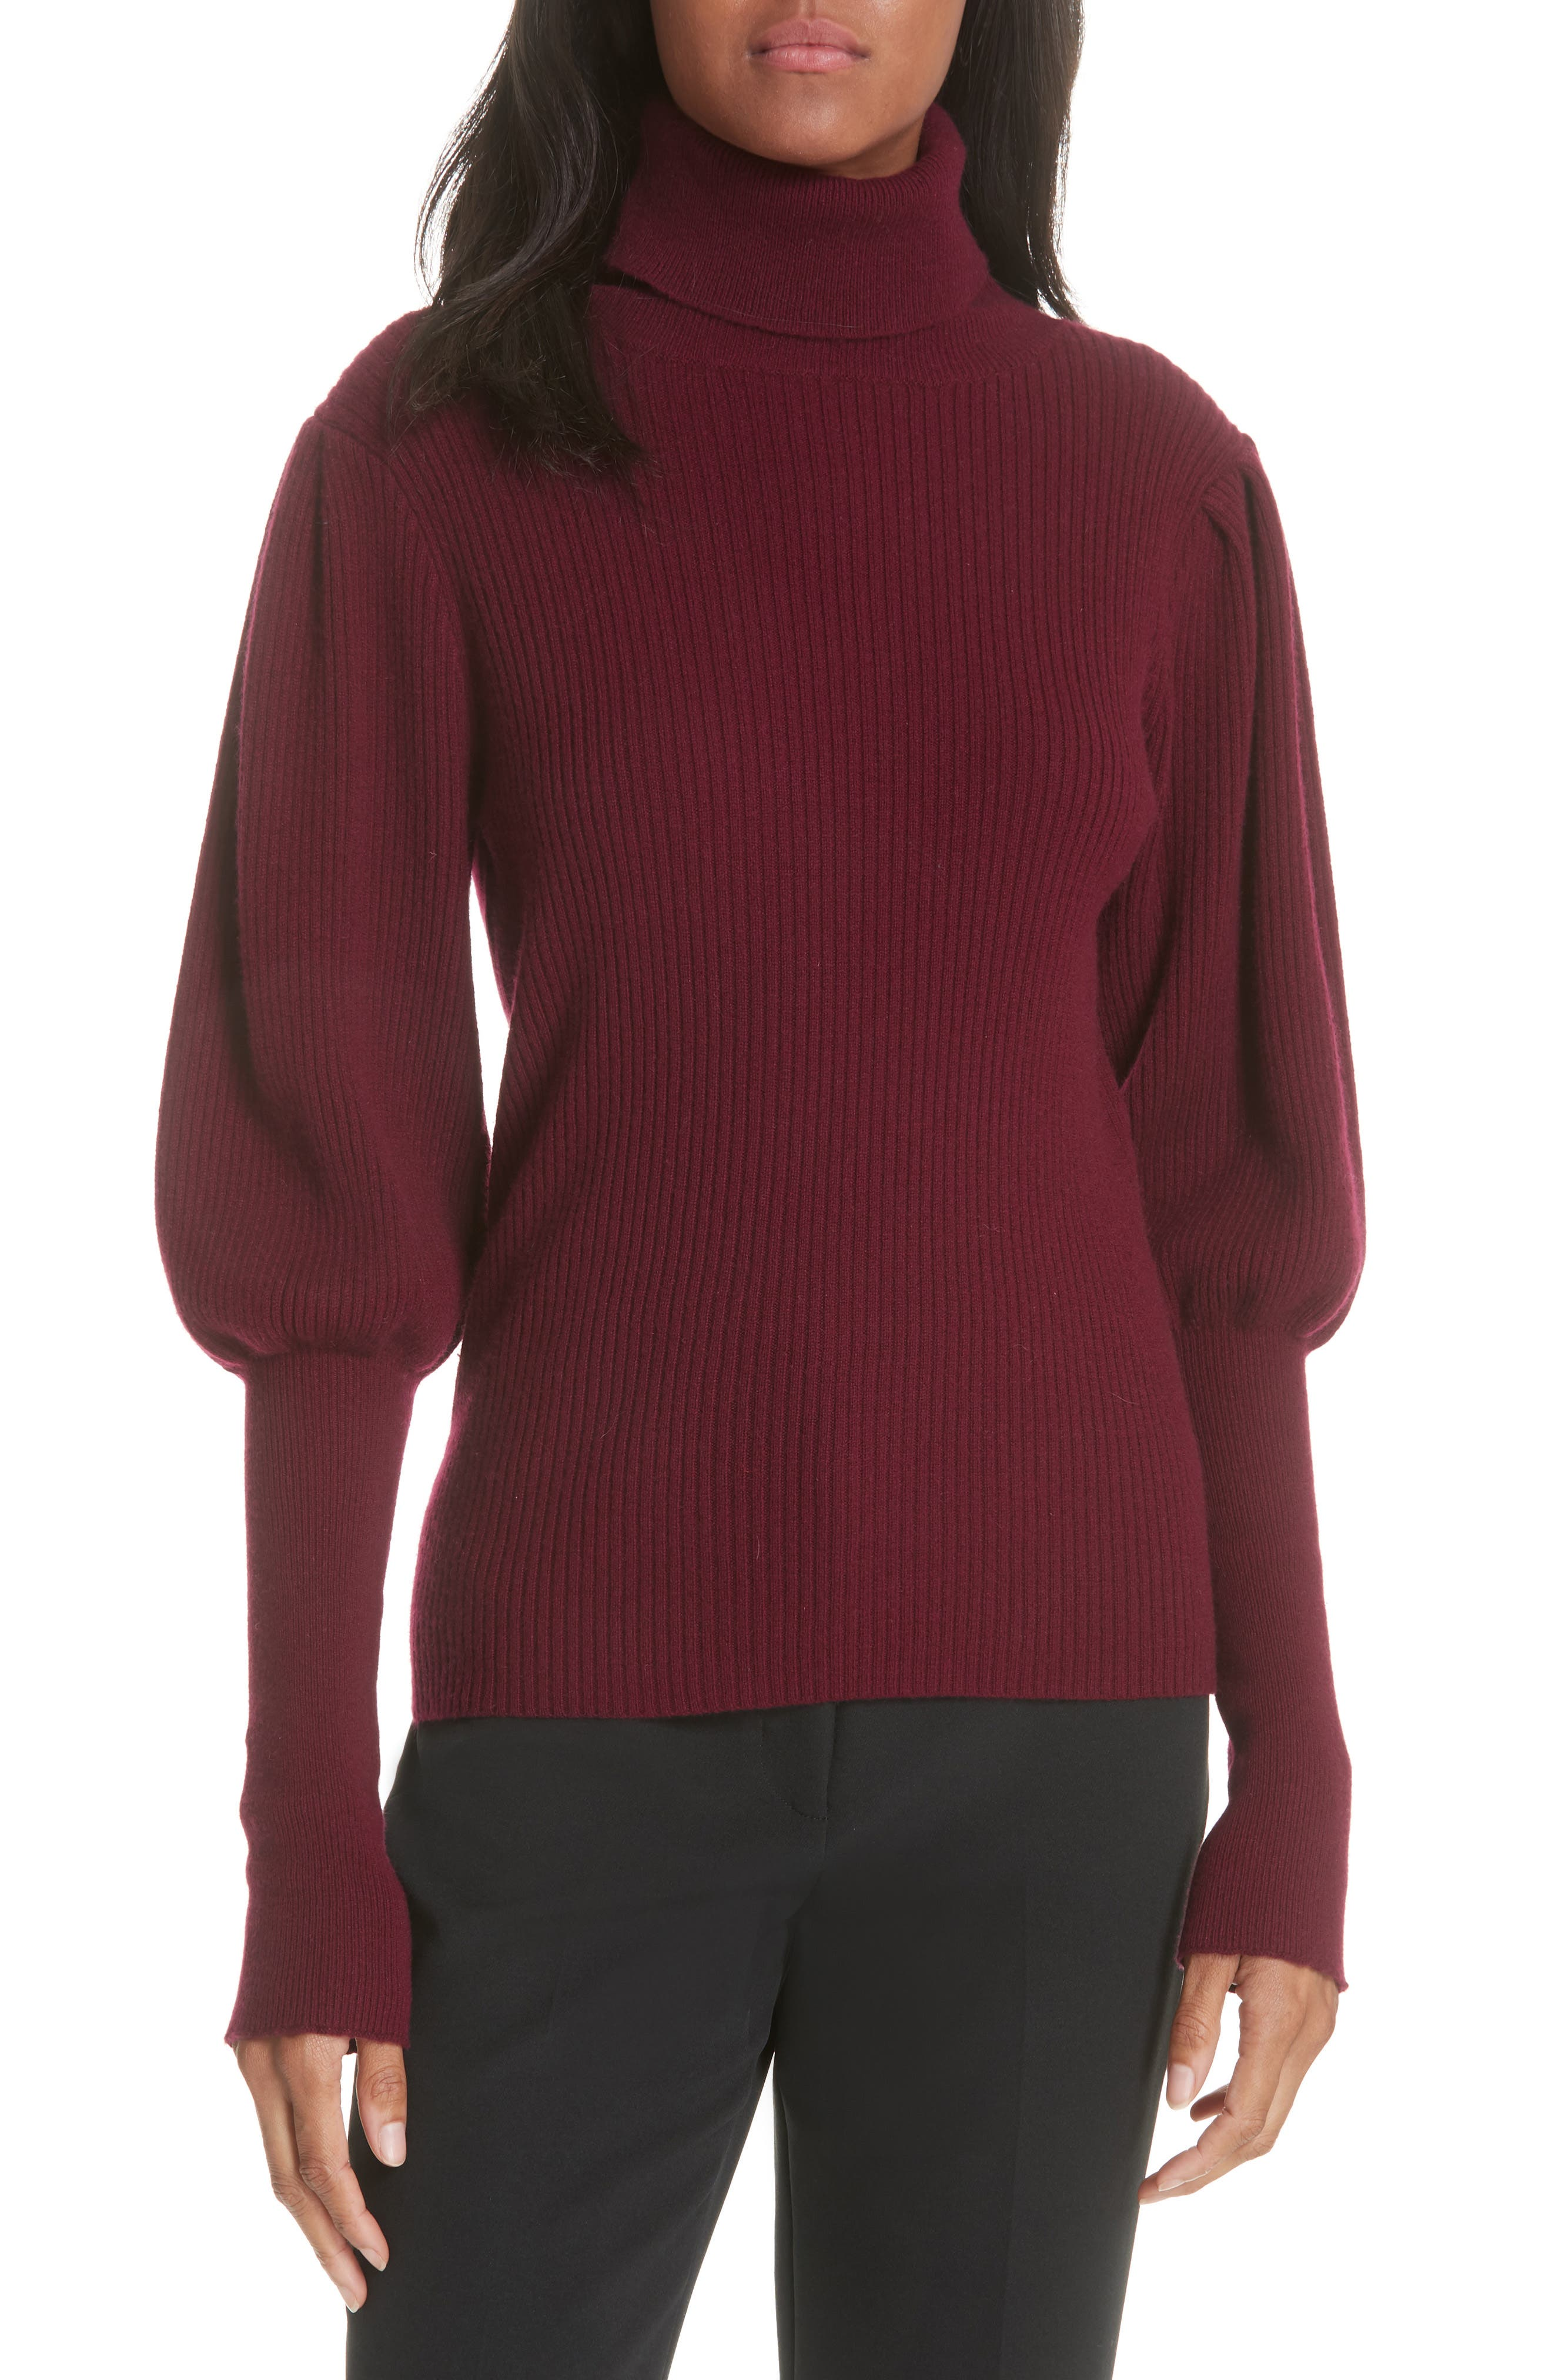 Bishop Sleeve Cashmere Sweater,                             Main thumbnail 1, color,                             933